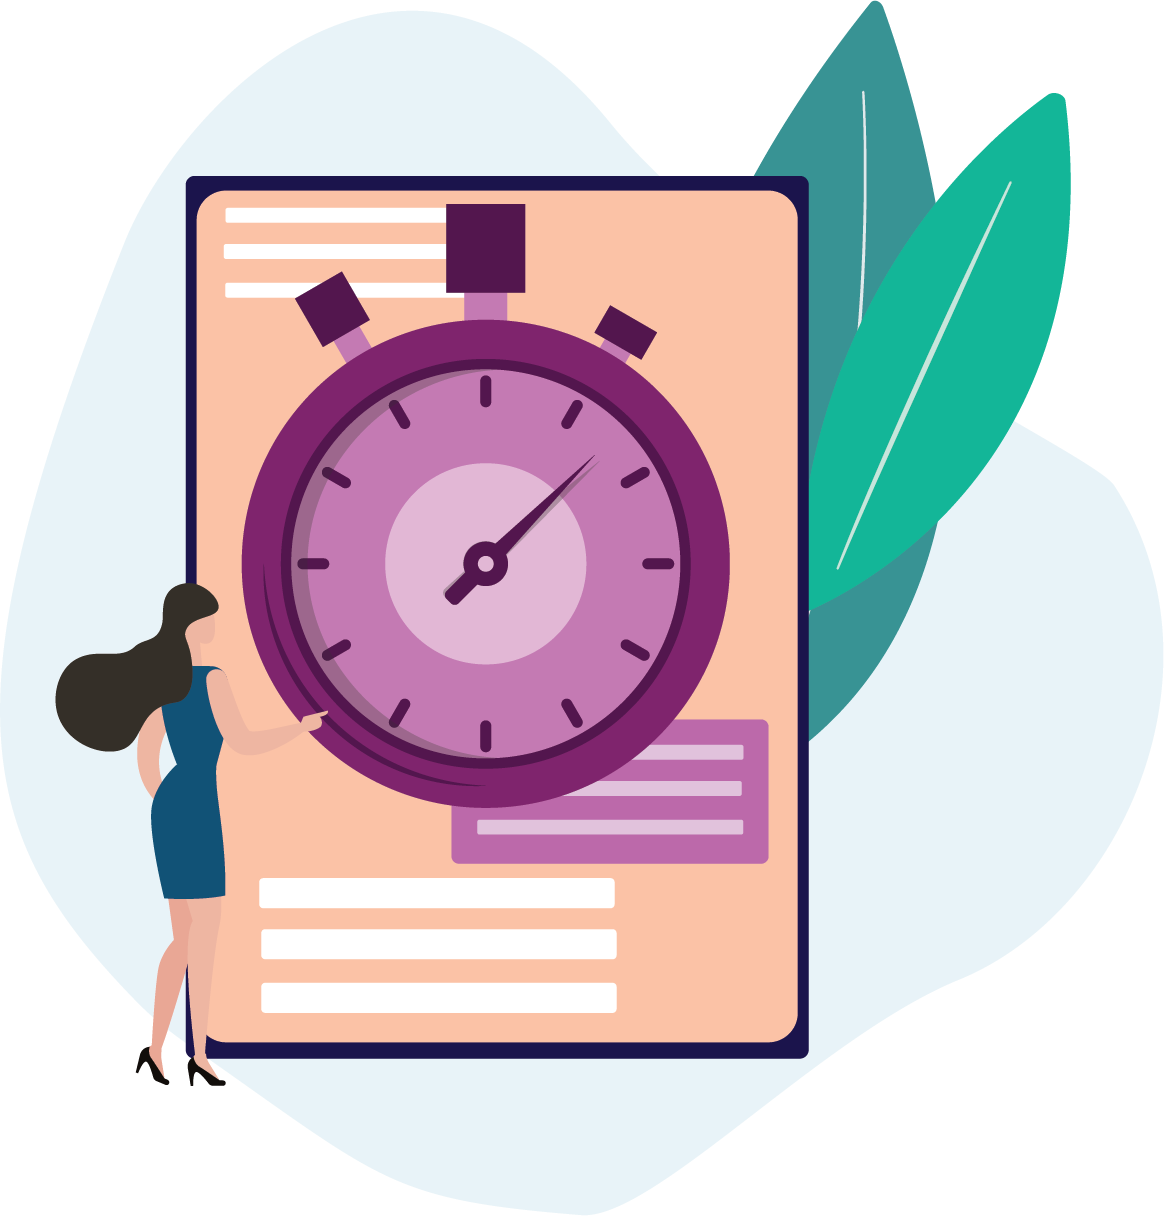 Graphic of user with stop watch, completing tasks quickly with property tax software